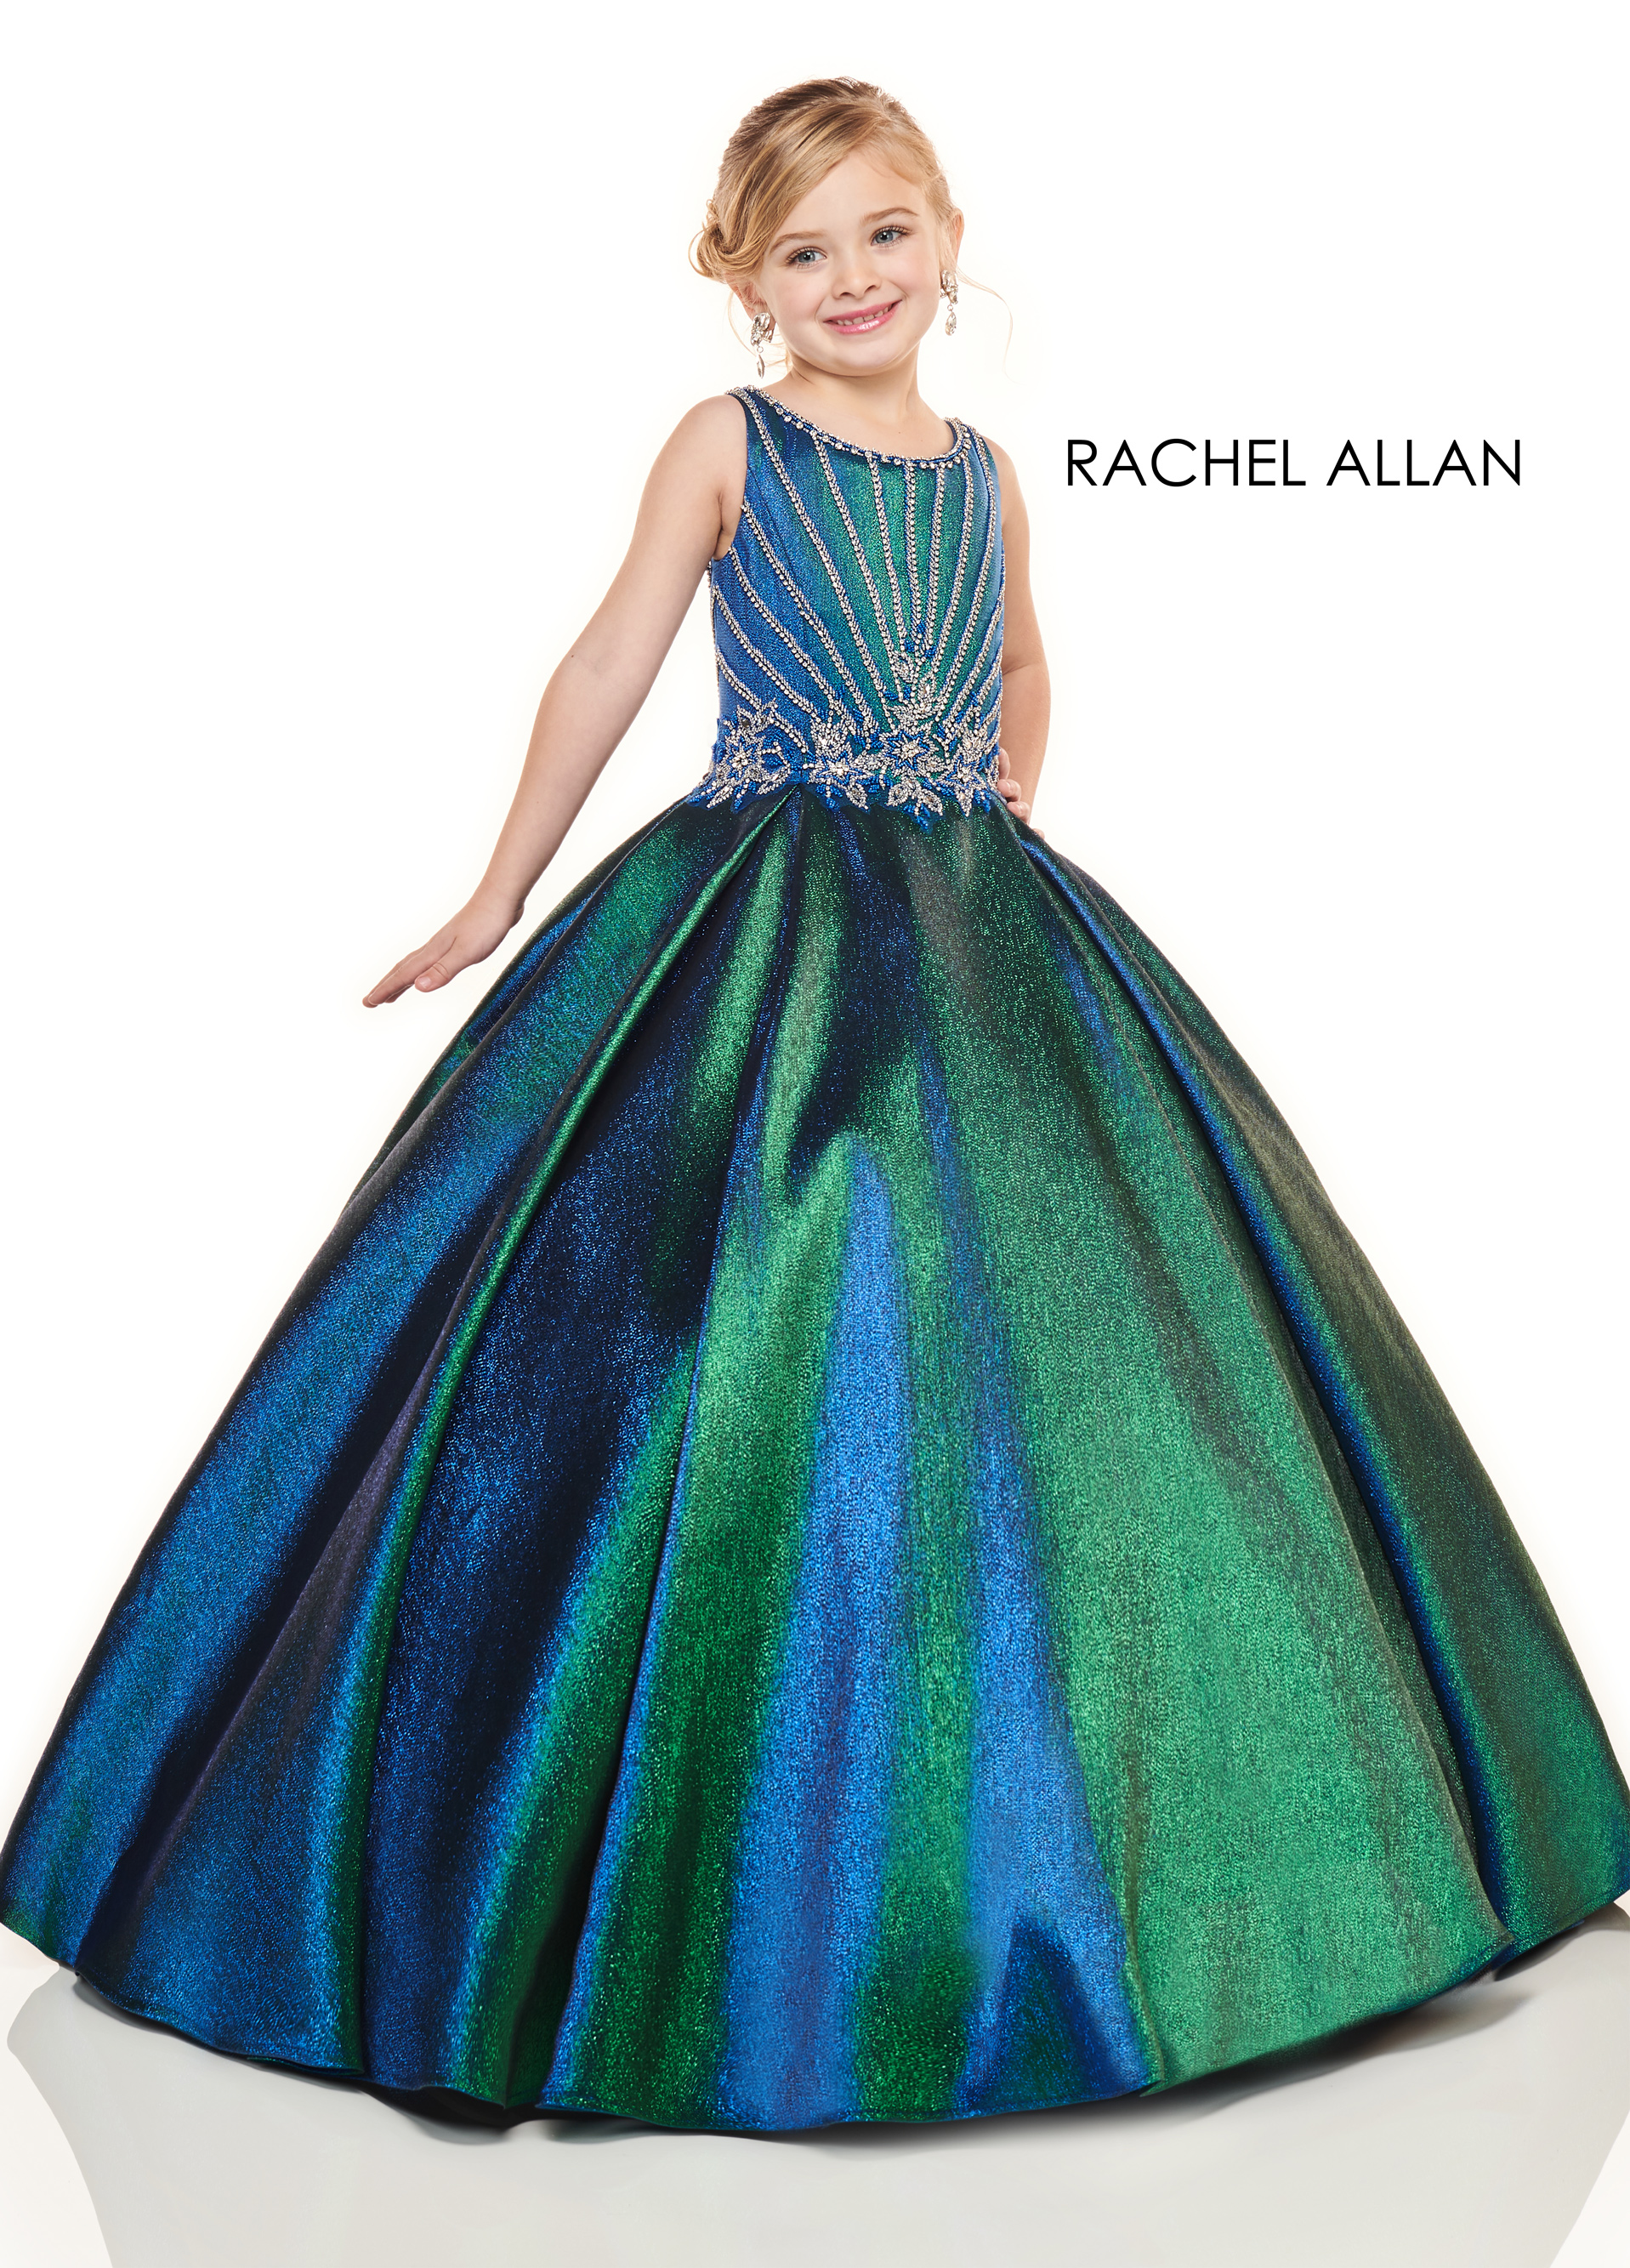 Scoop Neck Ball Gowns Little Girl Pageant Dresses in Green Color